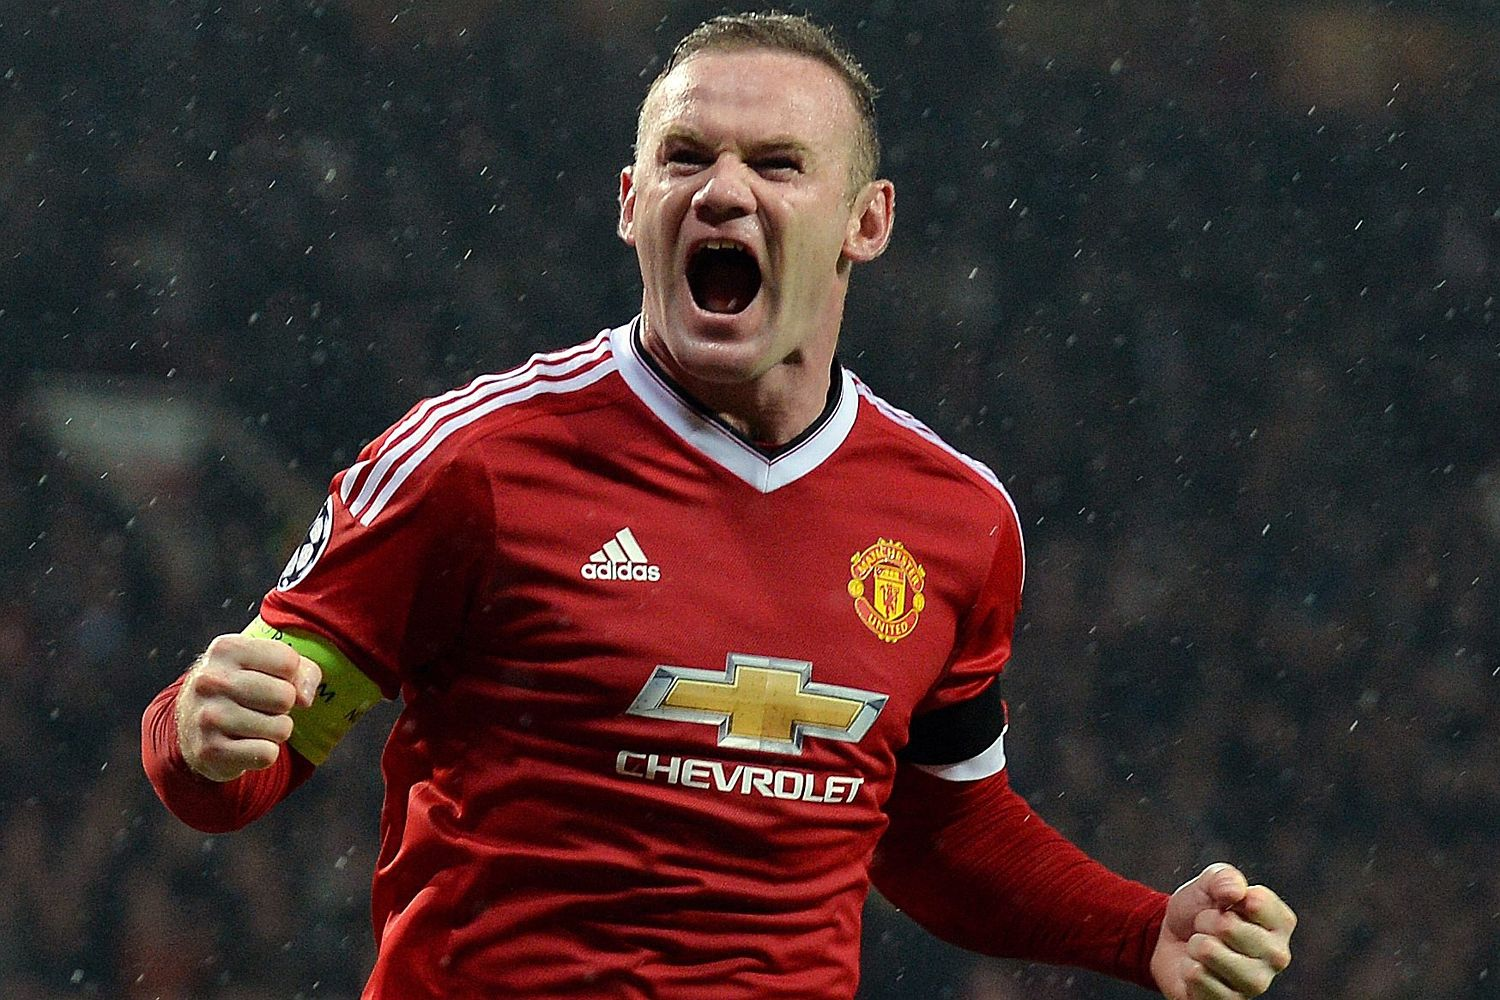 wayne rooney - photo #16